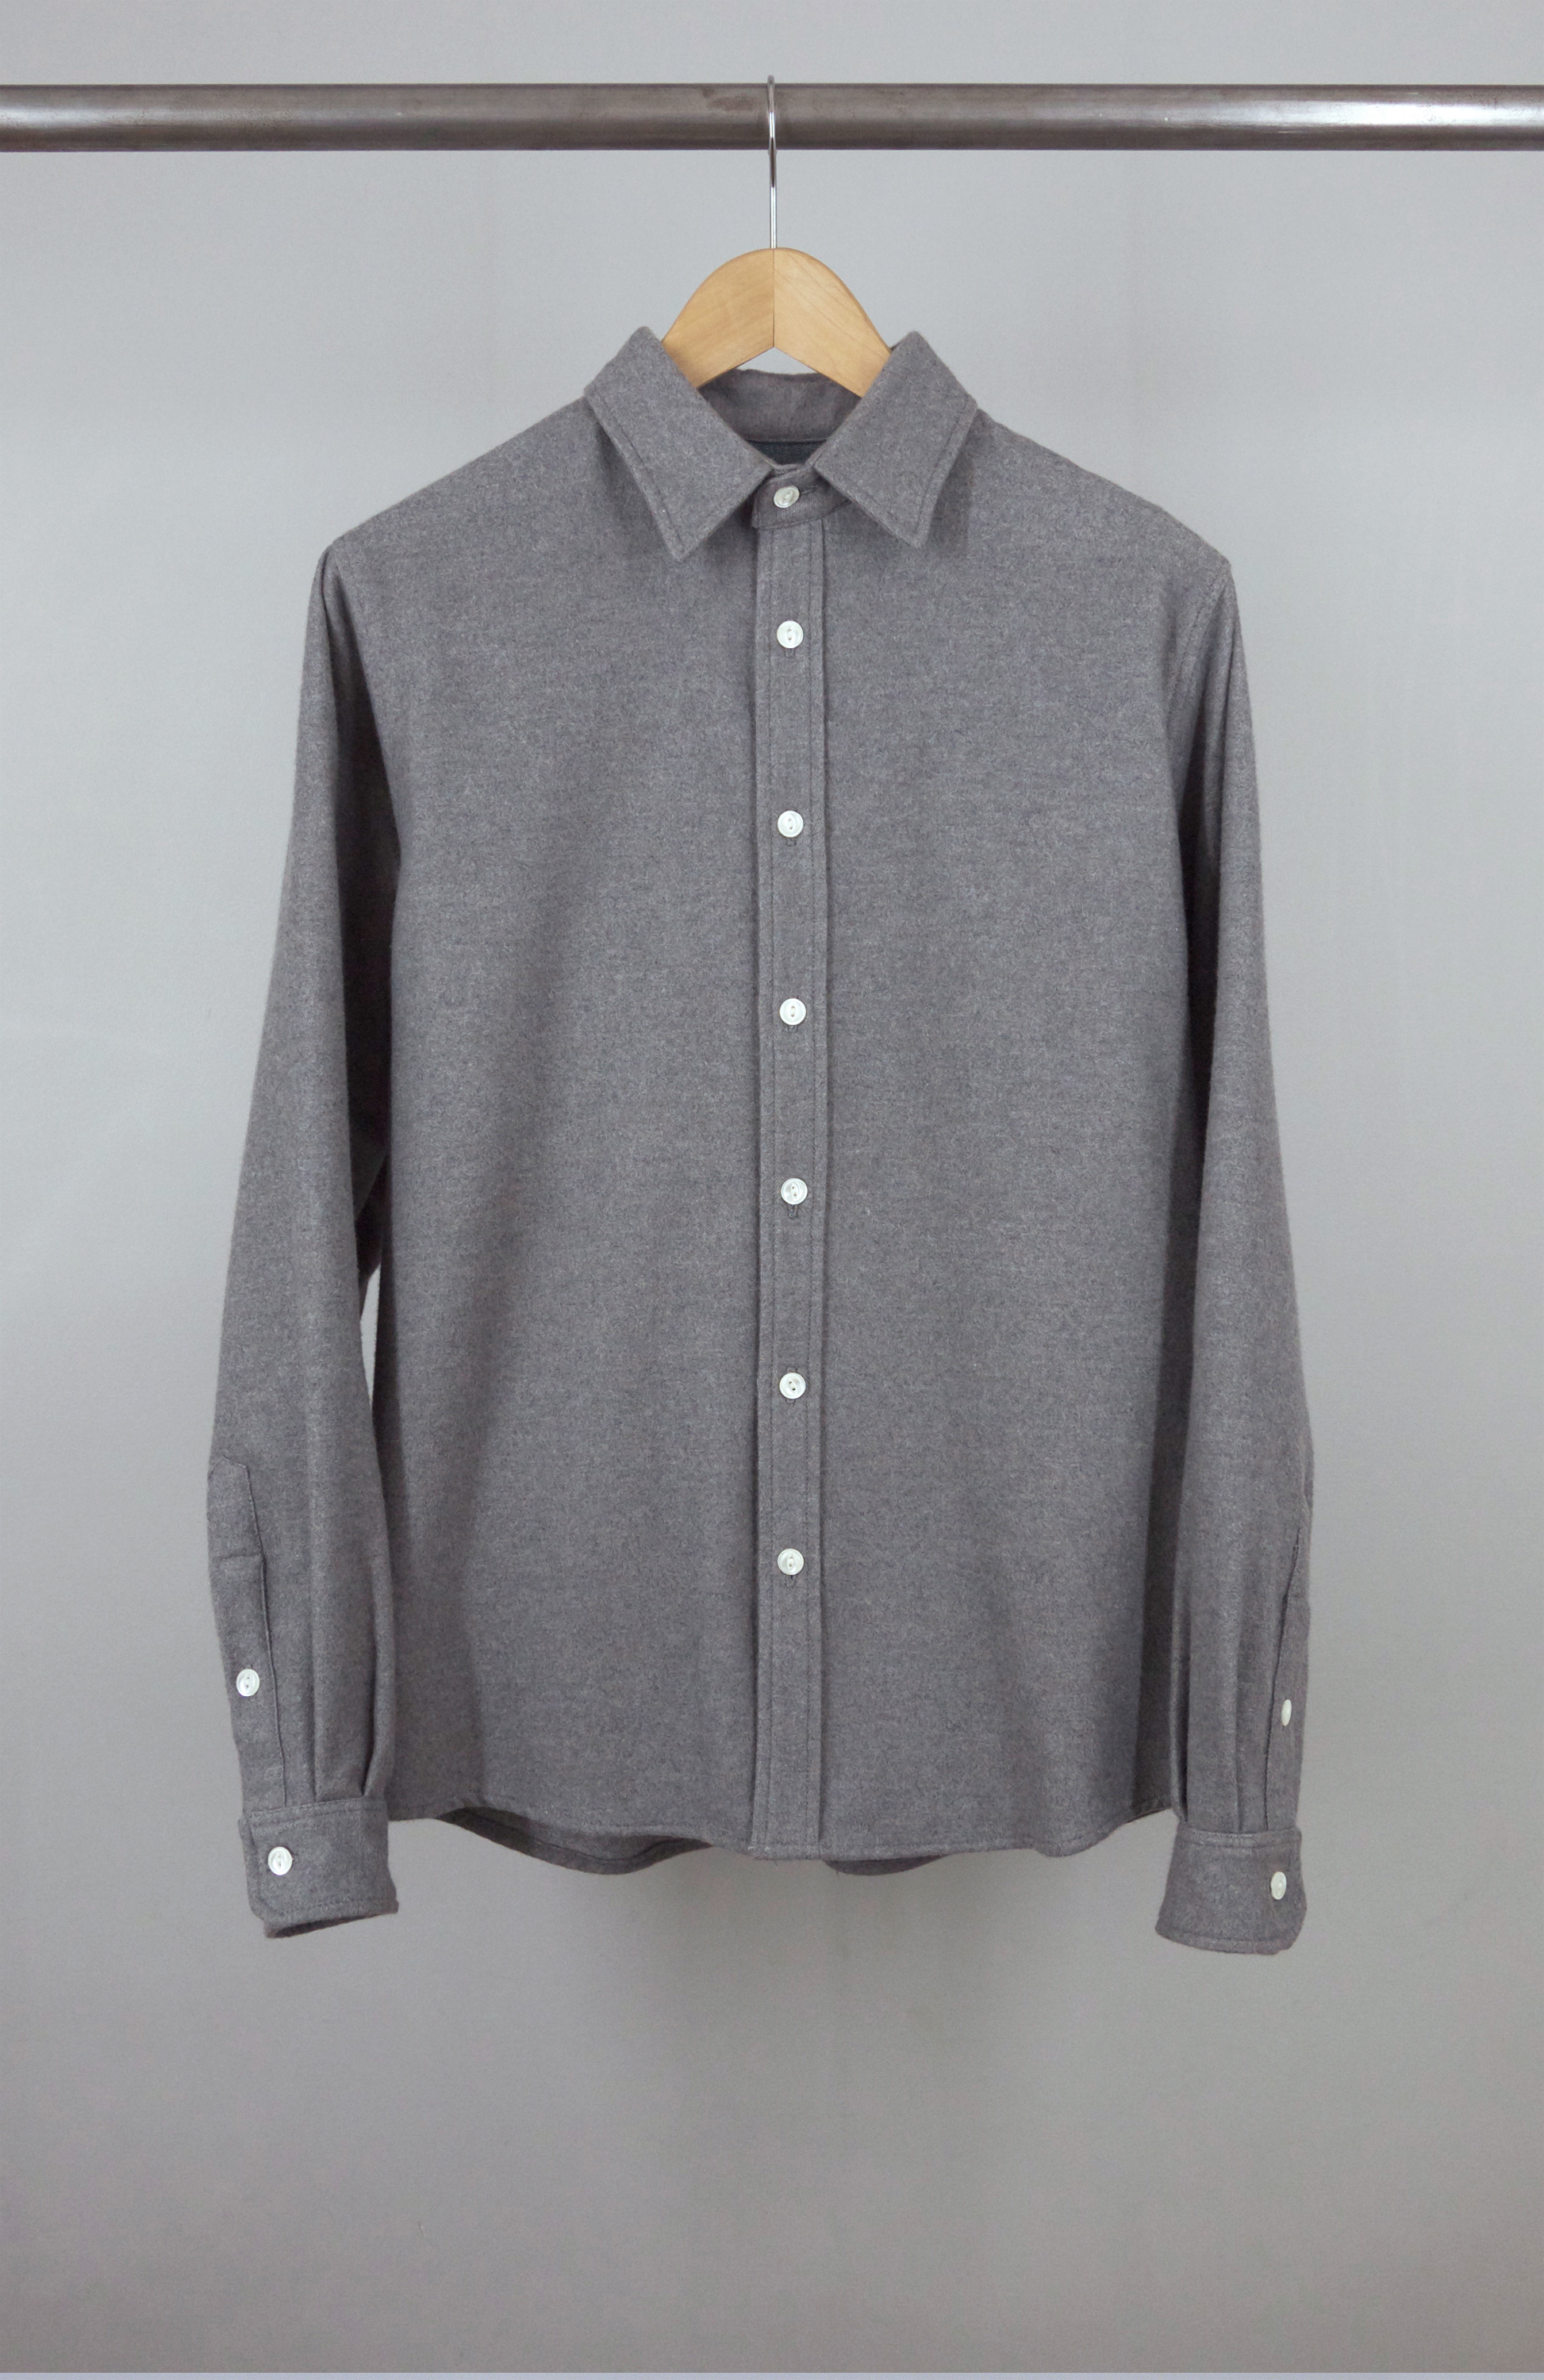 CLASSIC SHIRT GREY JAPAN FLANNEL